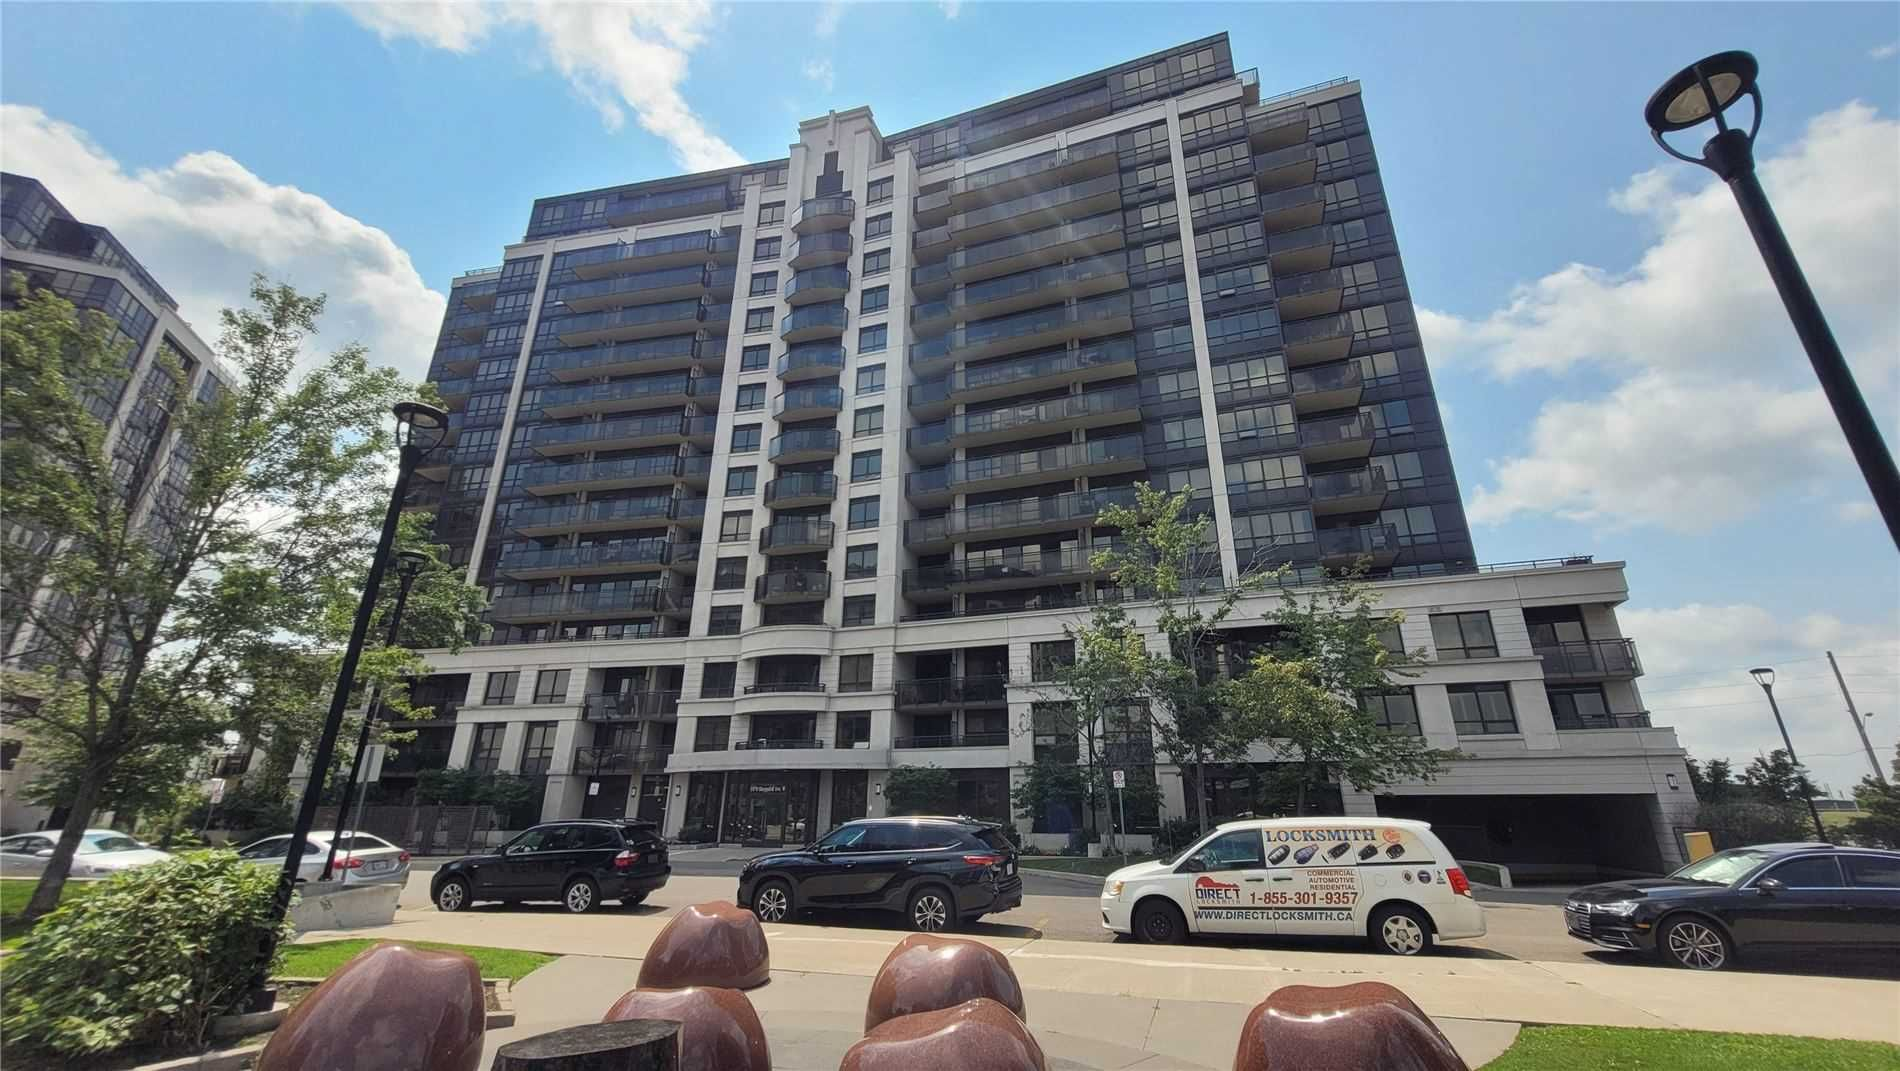 1070 Sheppard Ave W, unit 1516 for sale in York University Heights - image #1